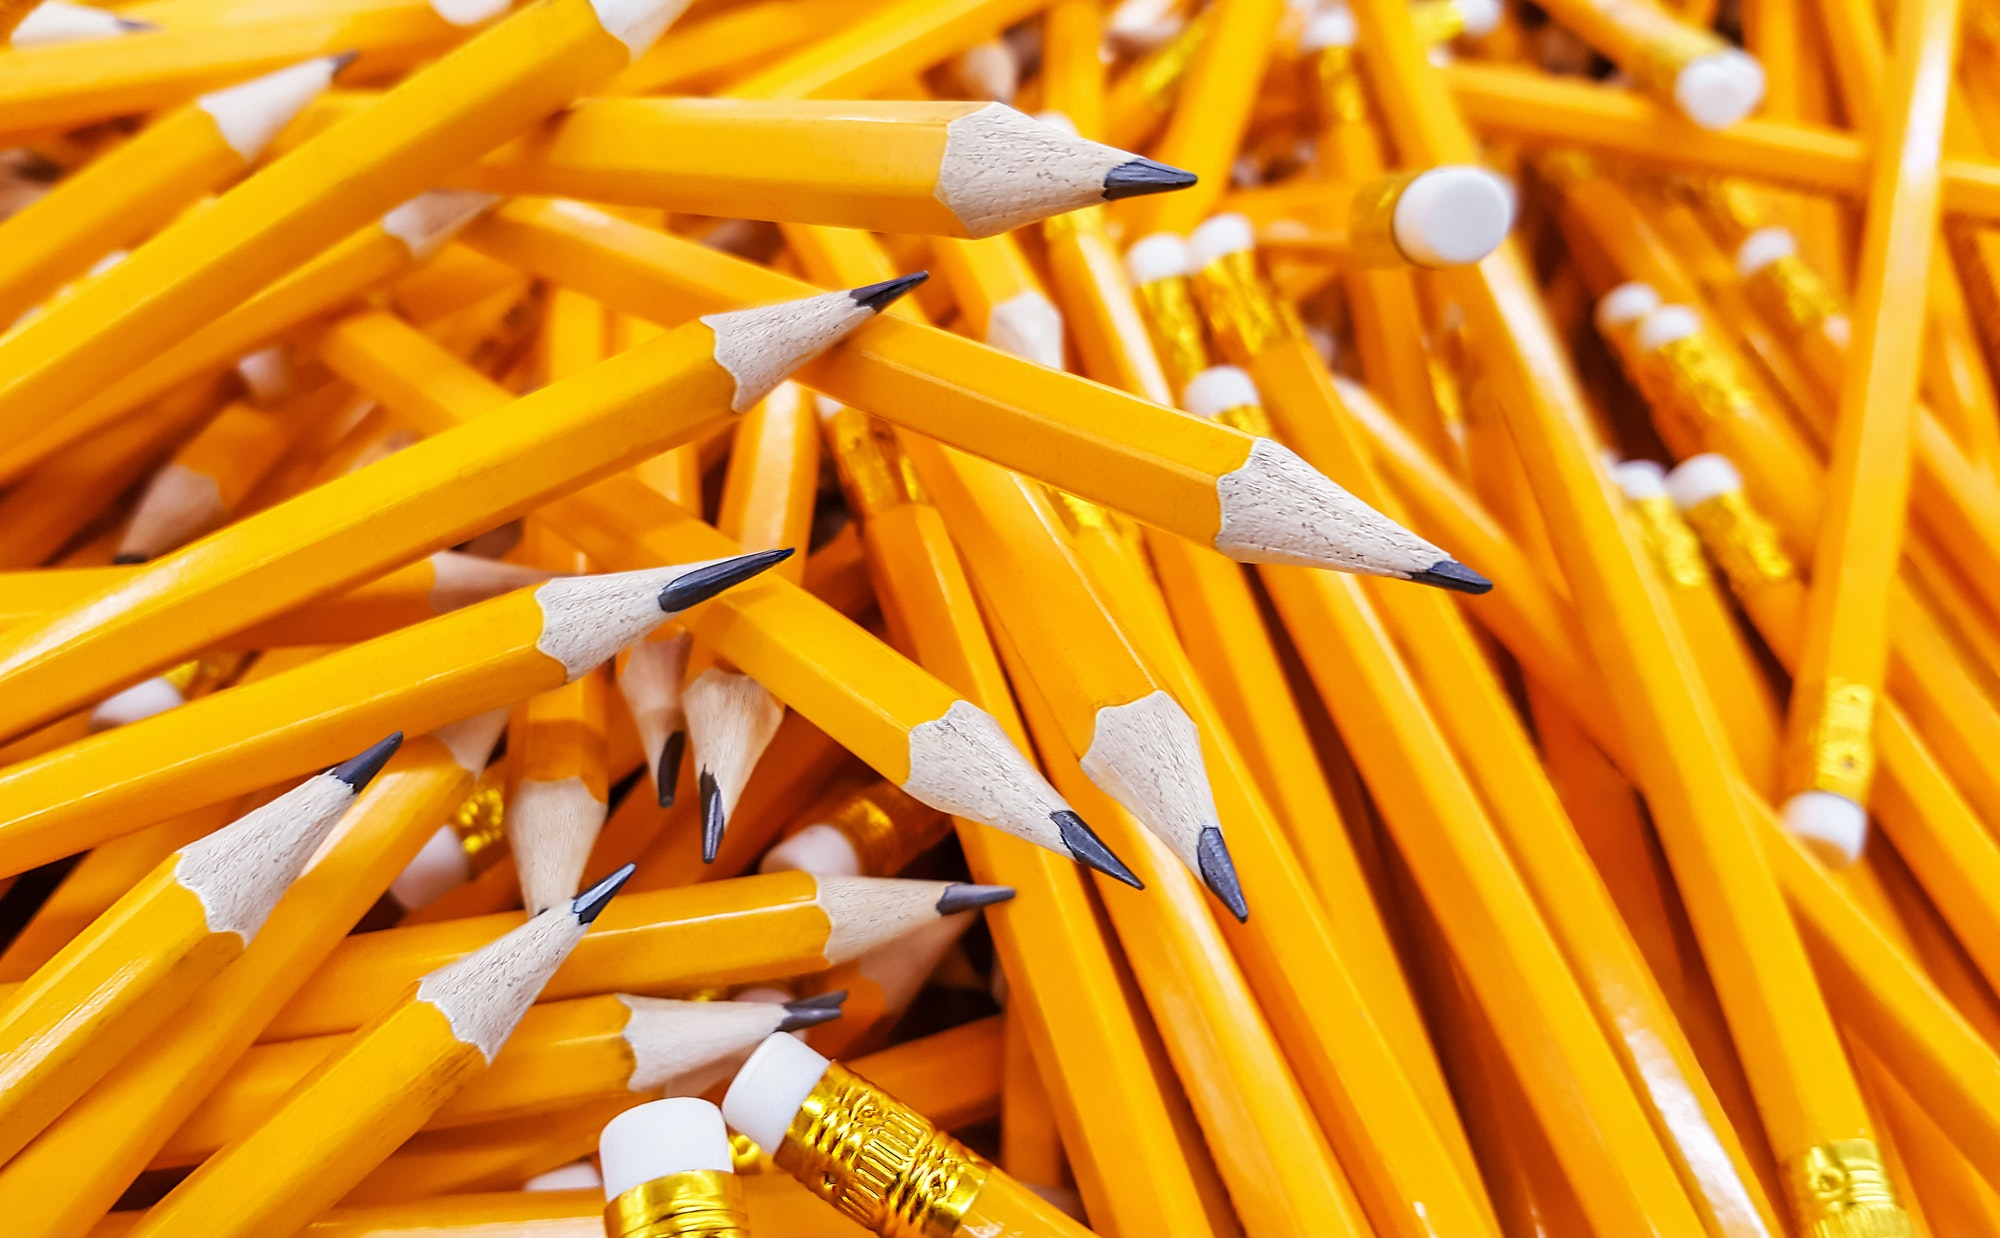 Many pencils piled in a big pile